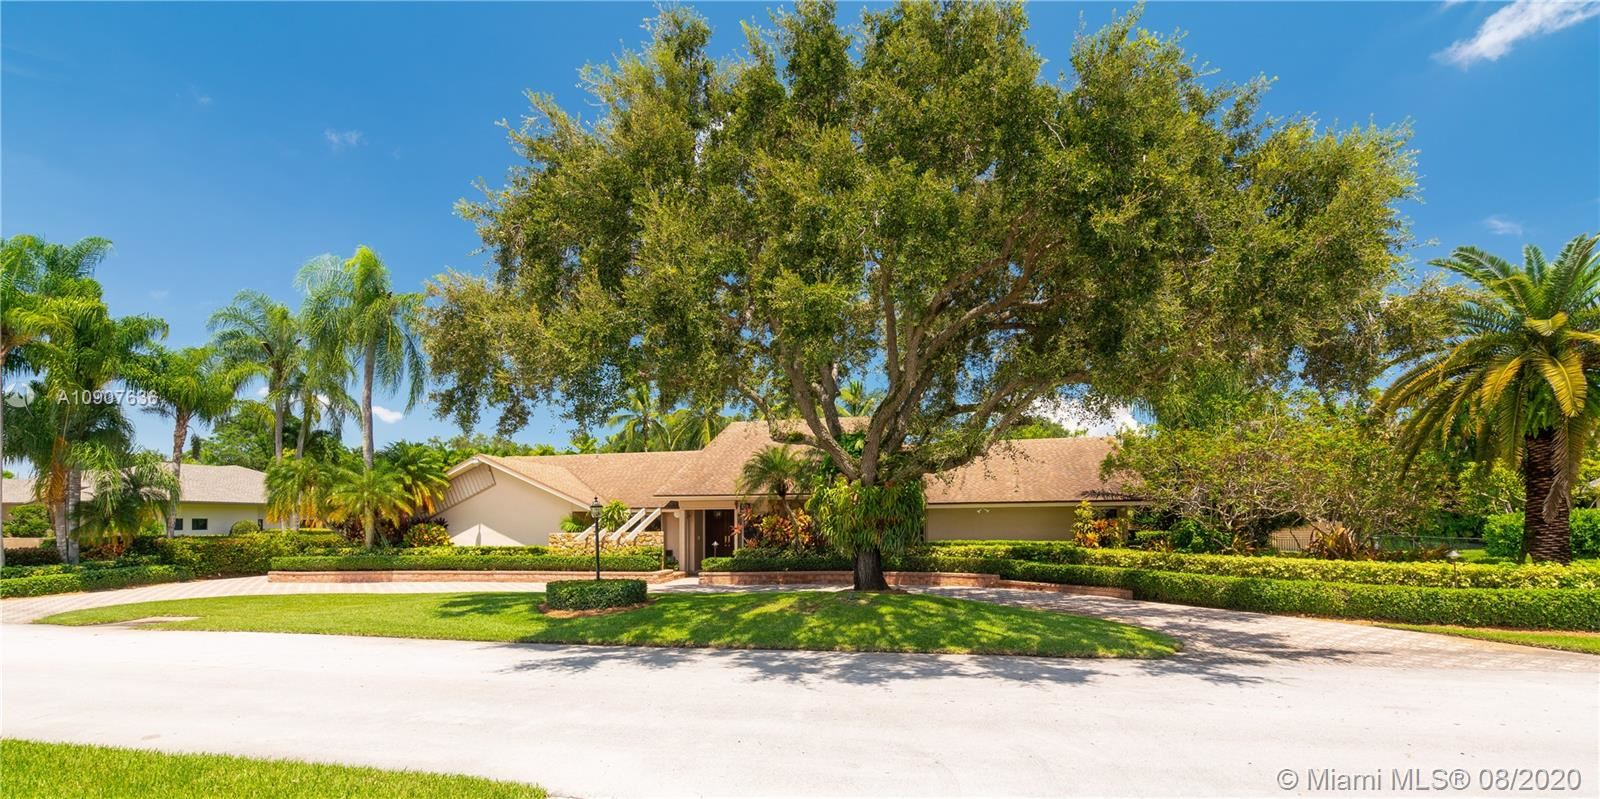 10095 SW 70th Ave, Pinecrest, FL 33156 - #: A10907636